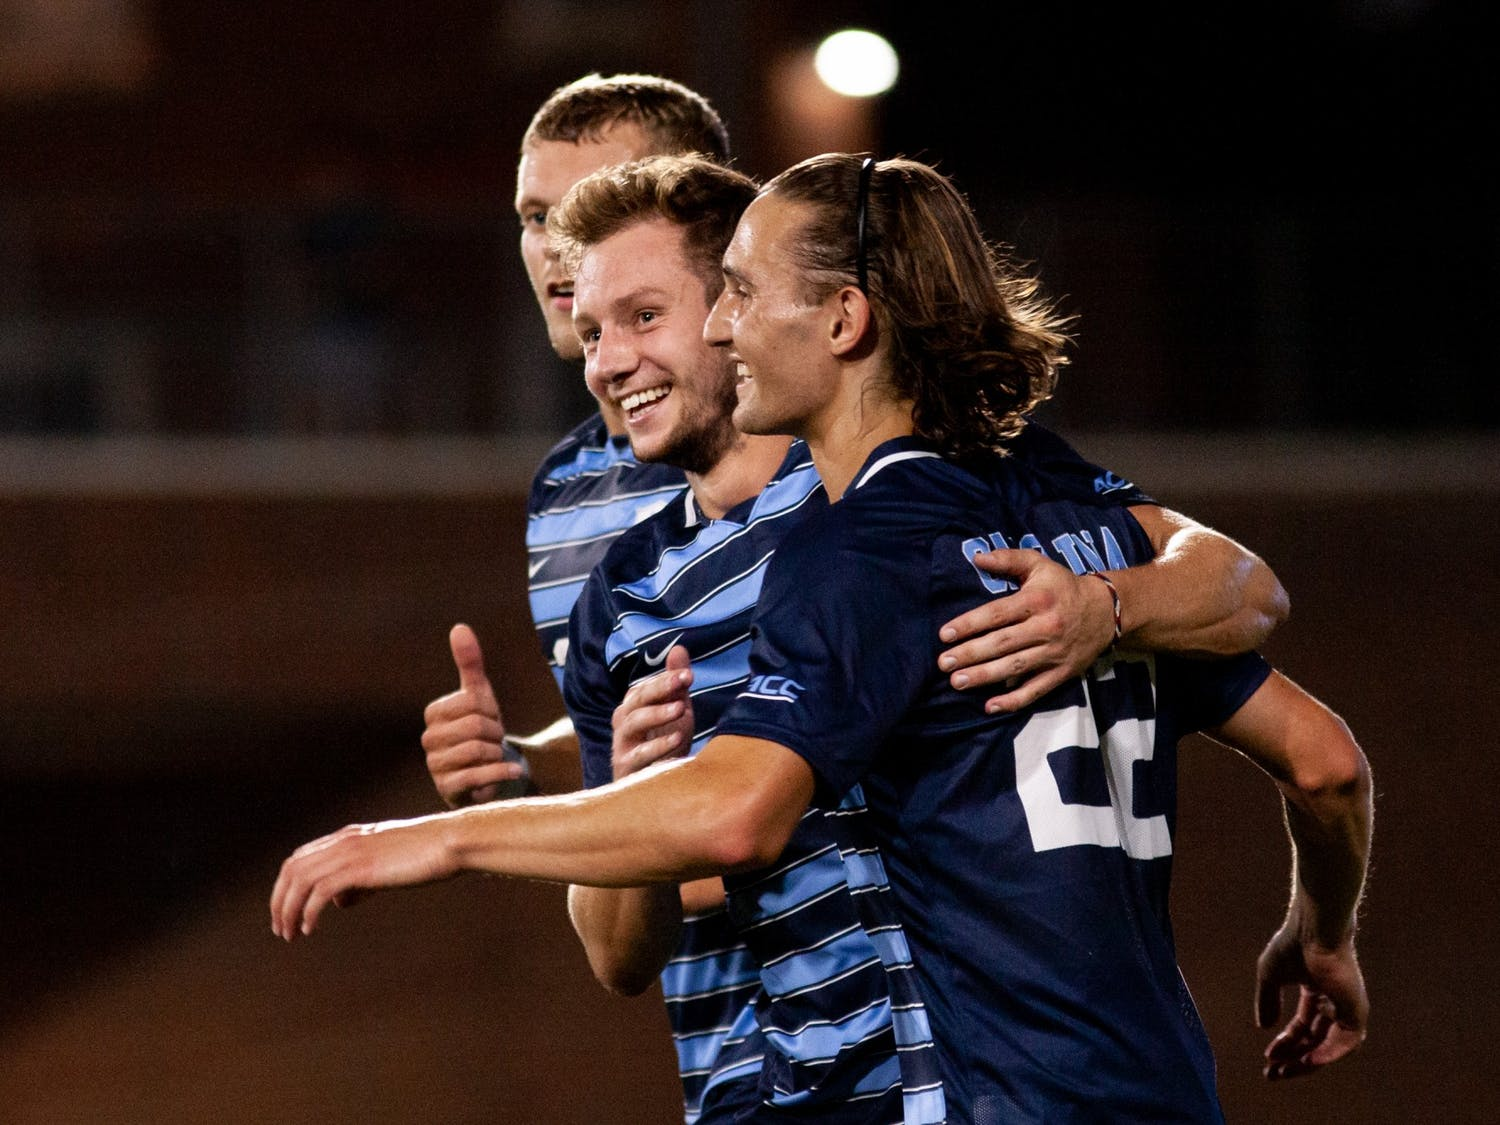 The UNC Tar Heels embrace after junior midfielder Cameron Fisher (17) scores the third goal of the game with an assist from midfielder/forward Ernest Bawa (20). The Tar Heels beat the Georgia Southern Eagles 3-0 at Dorrance Field on Friday, Sep. 3, 2021.